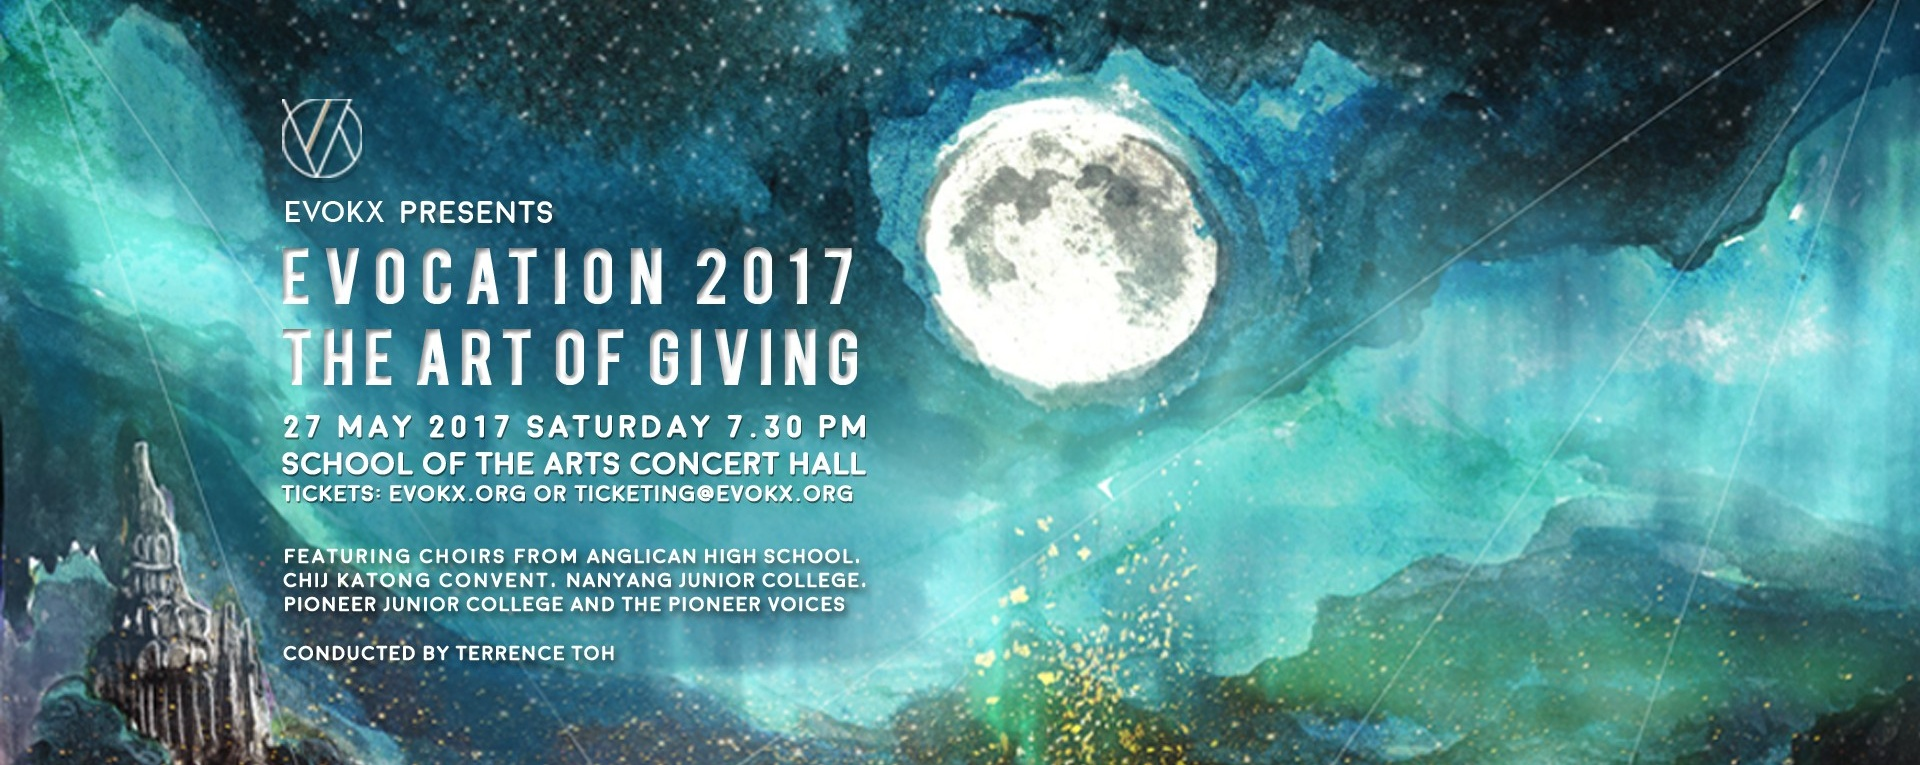 Evocation 2017: The Art of Giving